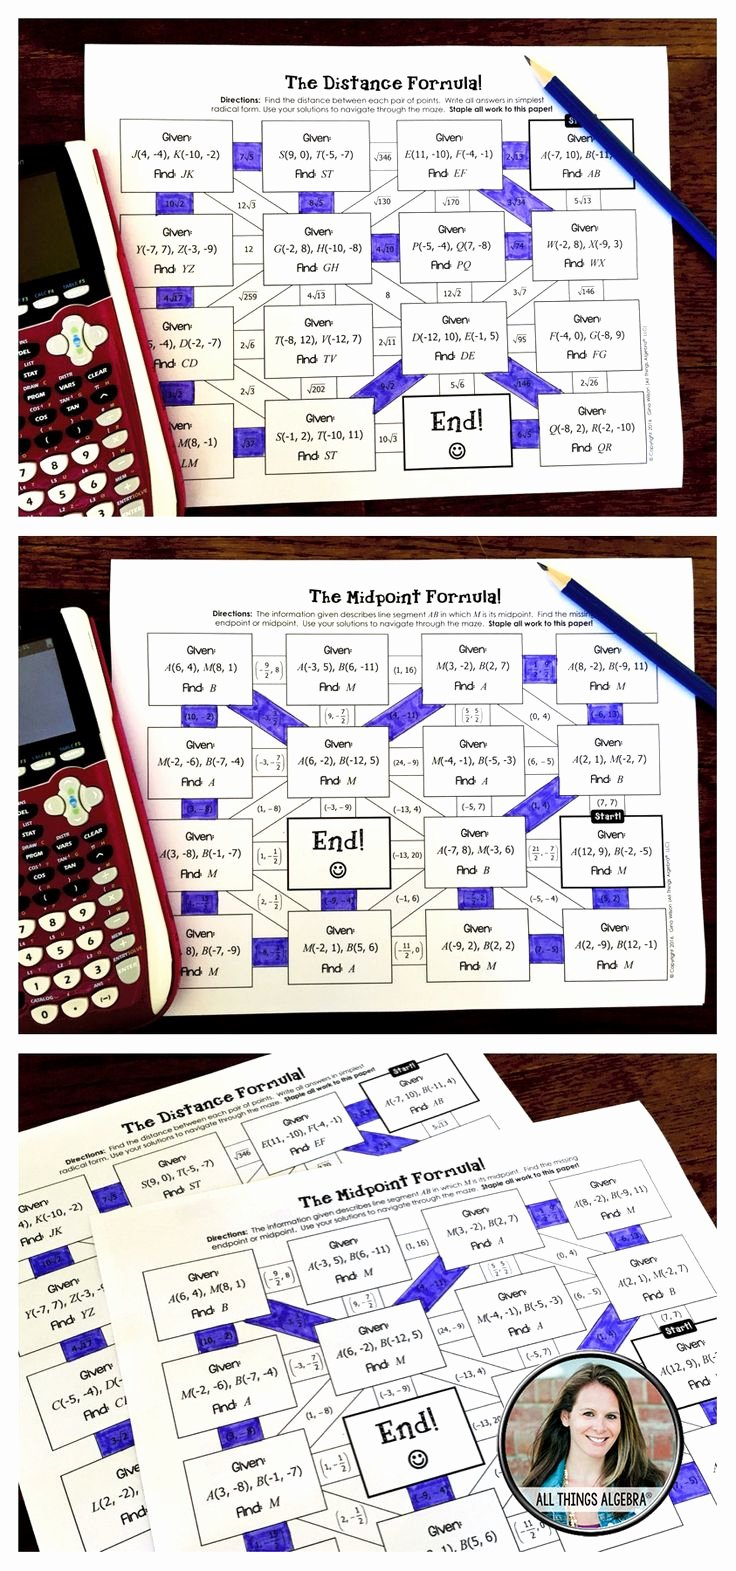 Distance formula Worksheet Geometry Lovely Distance formula and Midpoint formula Mazes